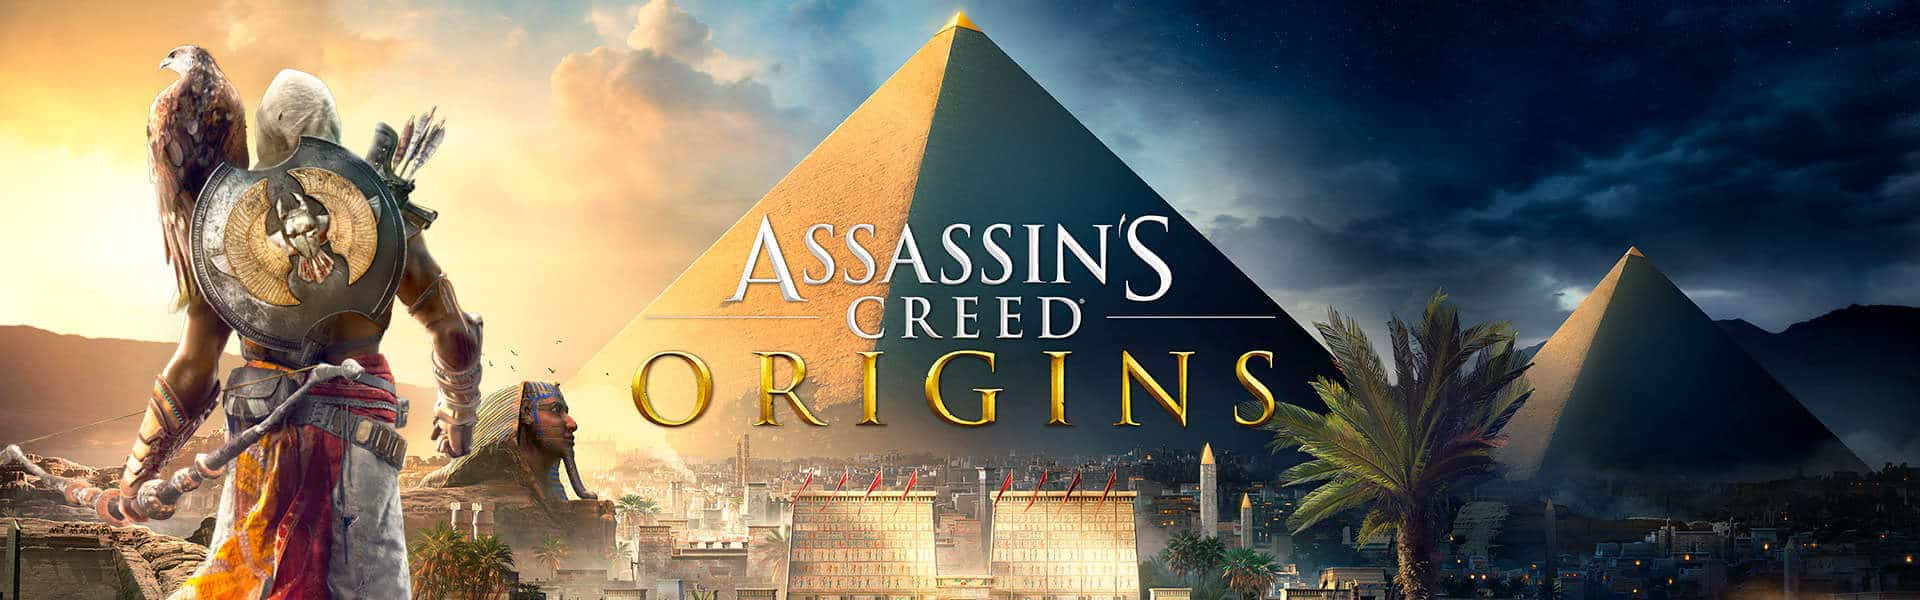 Best Settings For Assassin's Creed: Origins